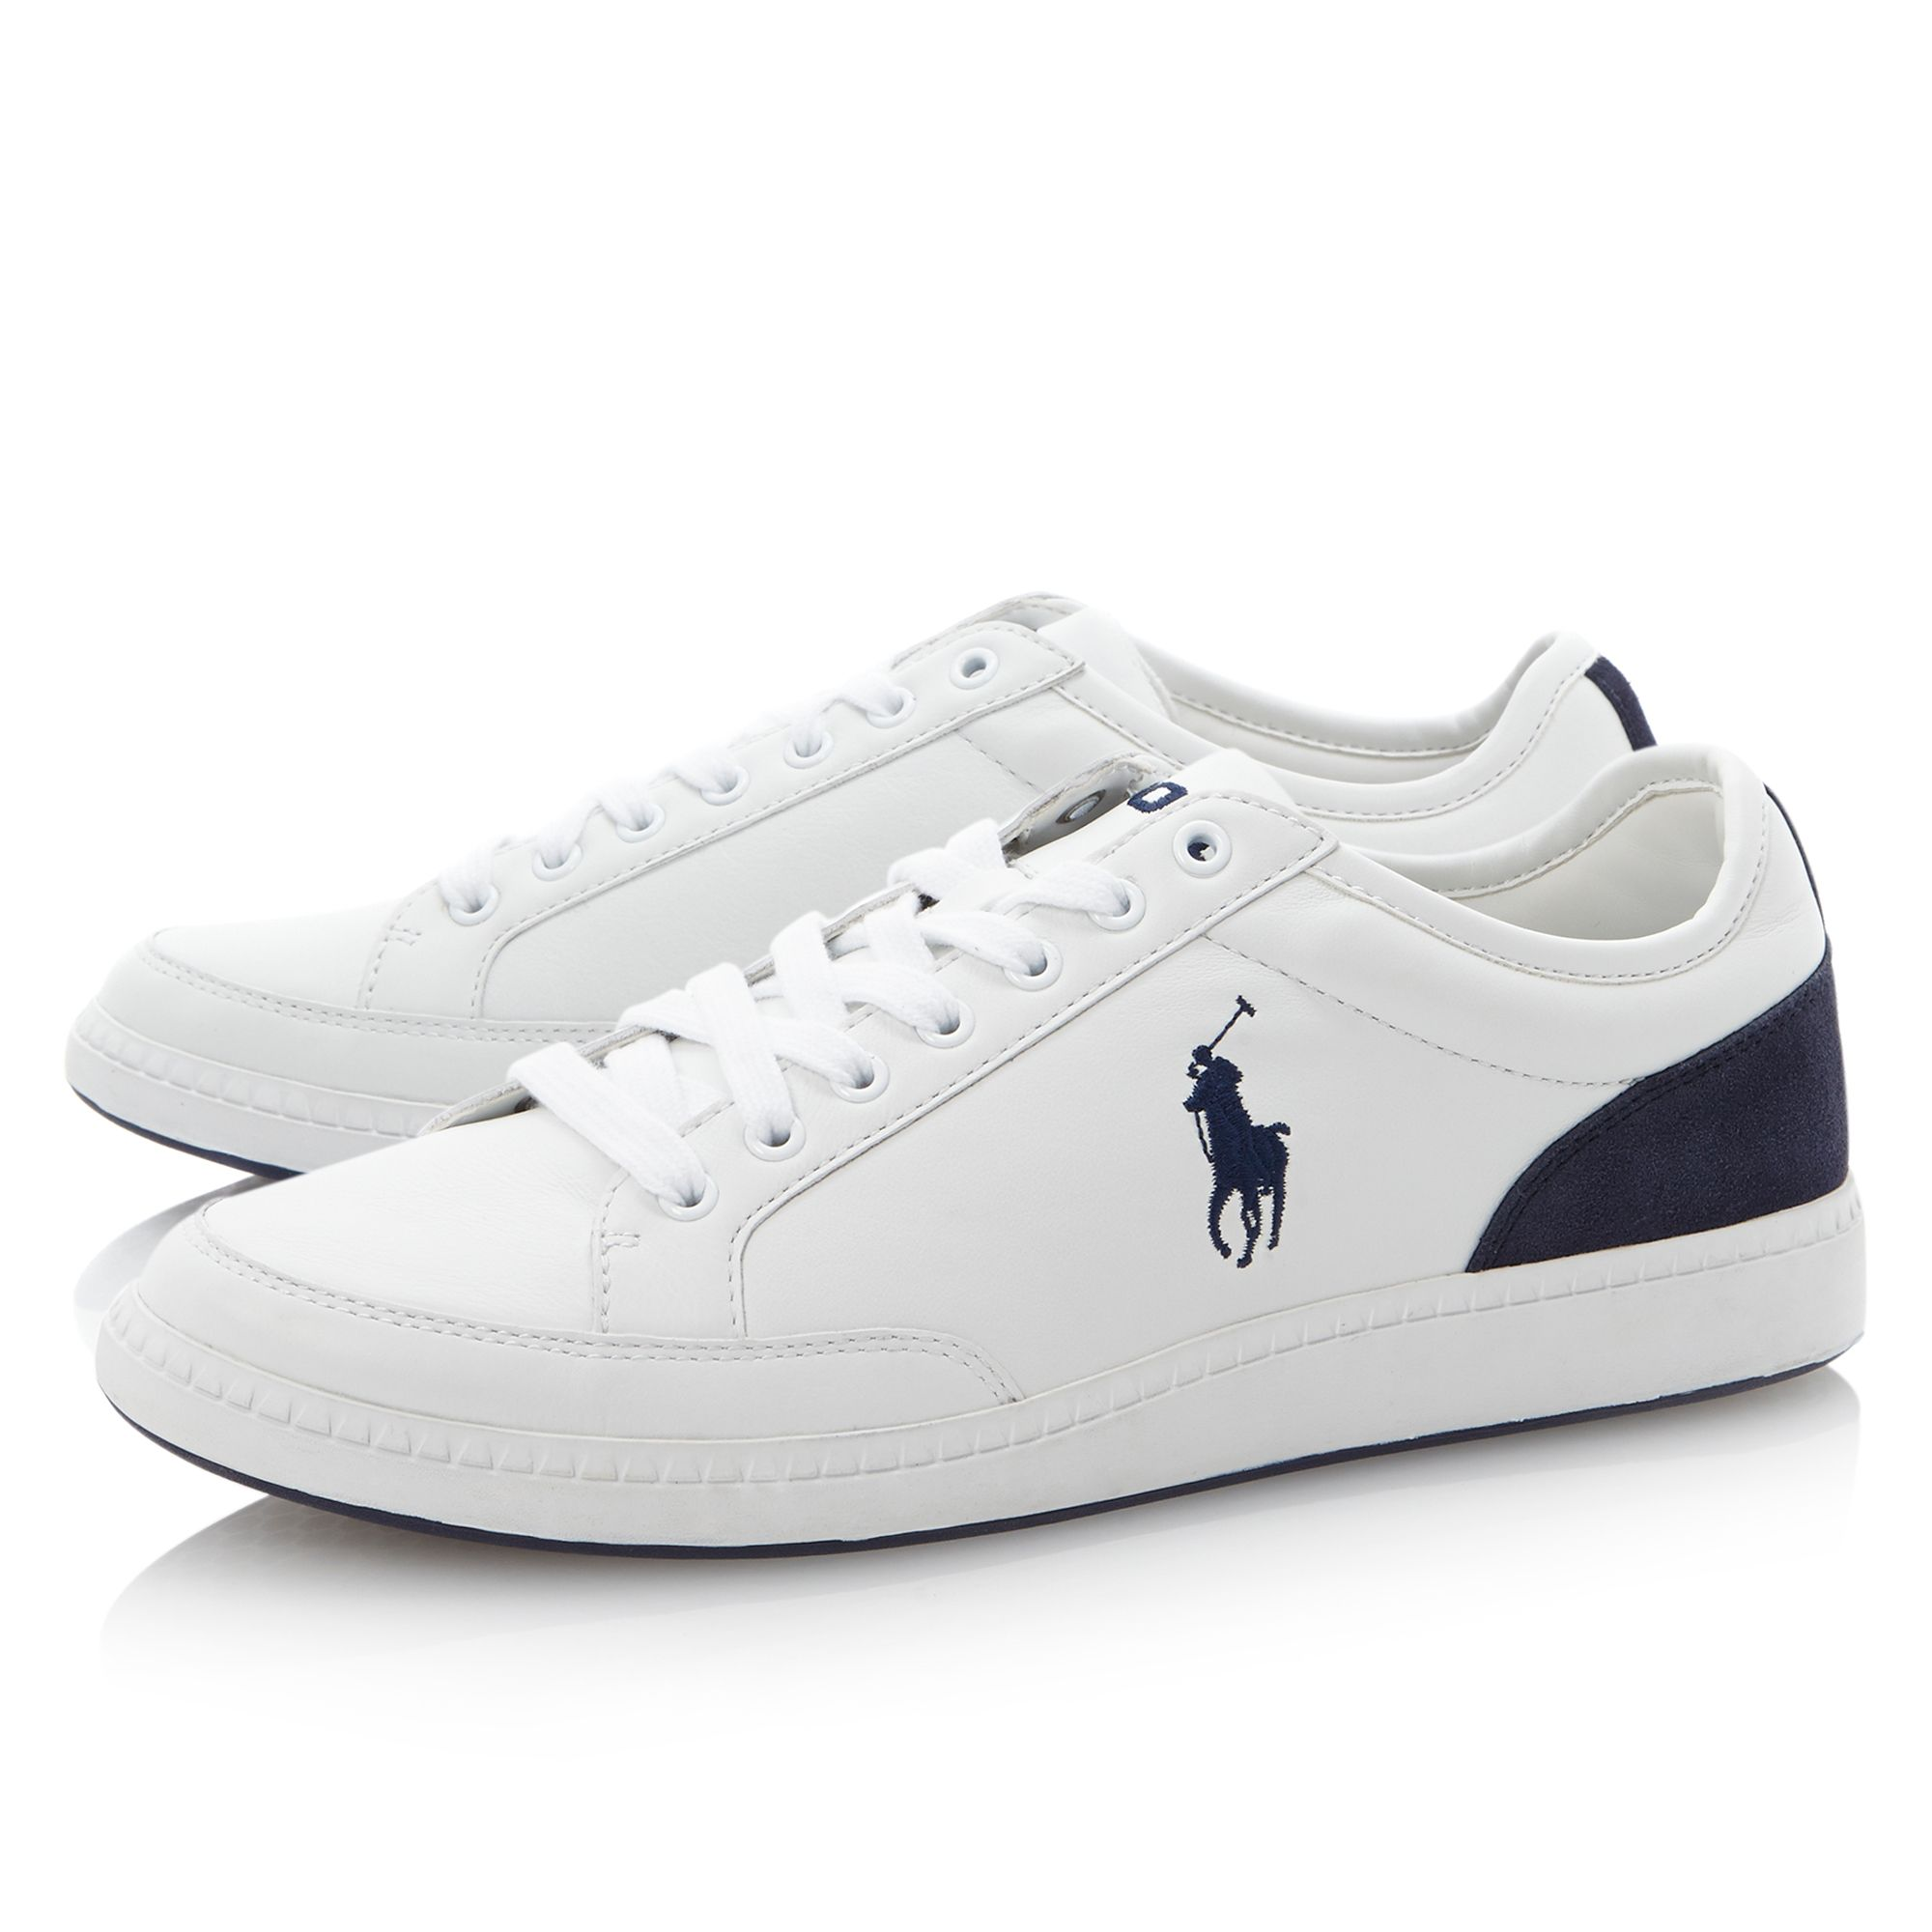 Hurlston round toe side logo sneaker trainers